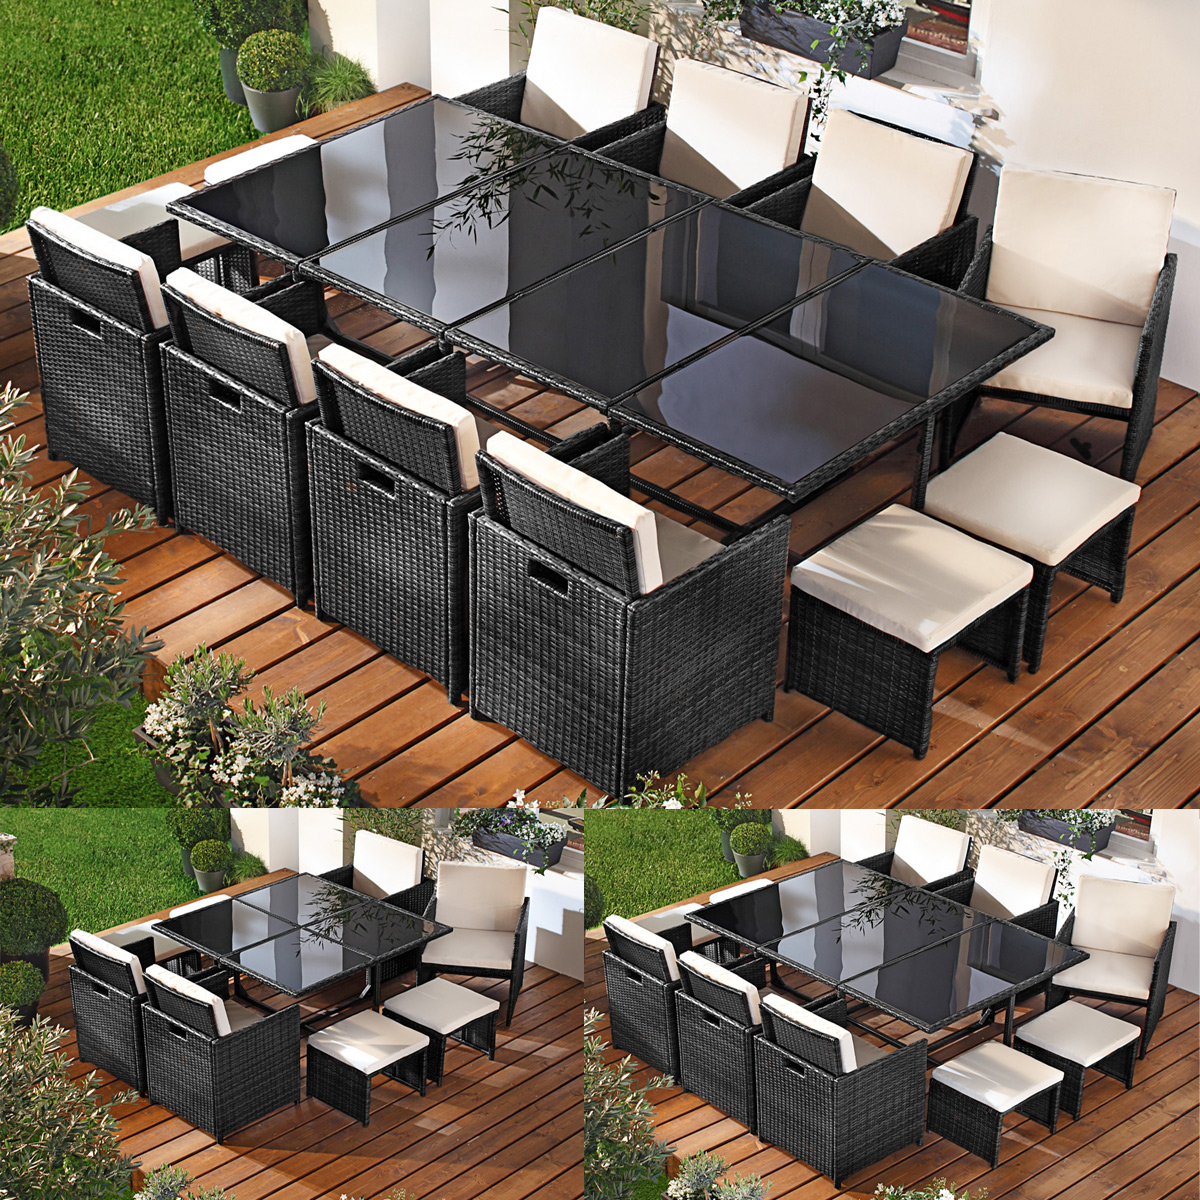 terrassenm bel rattan lounge. Black Bedroom Furniture Sets. Home Design Ideas